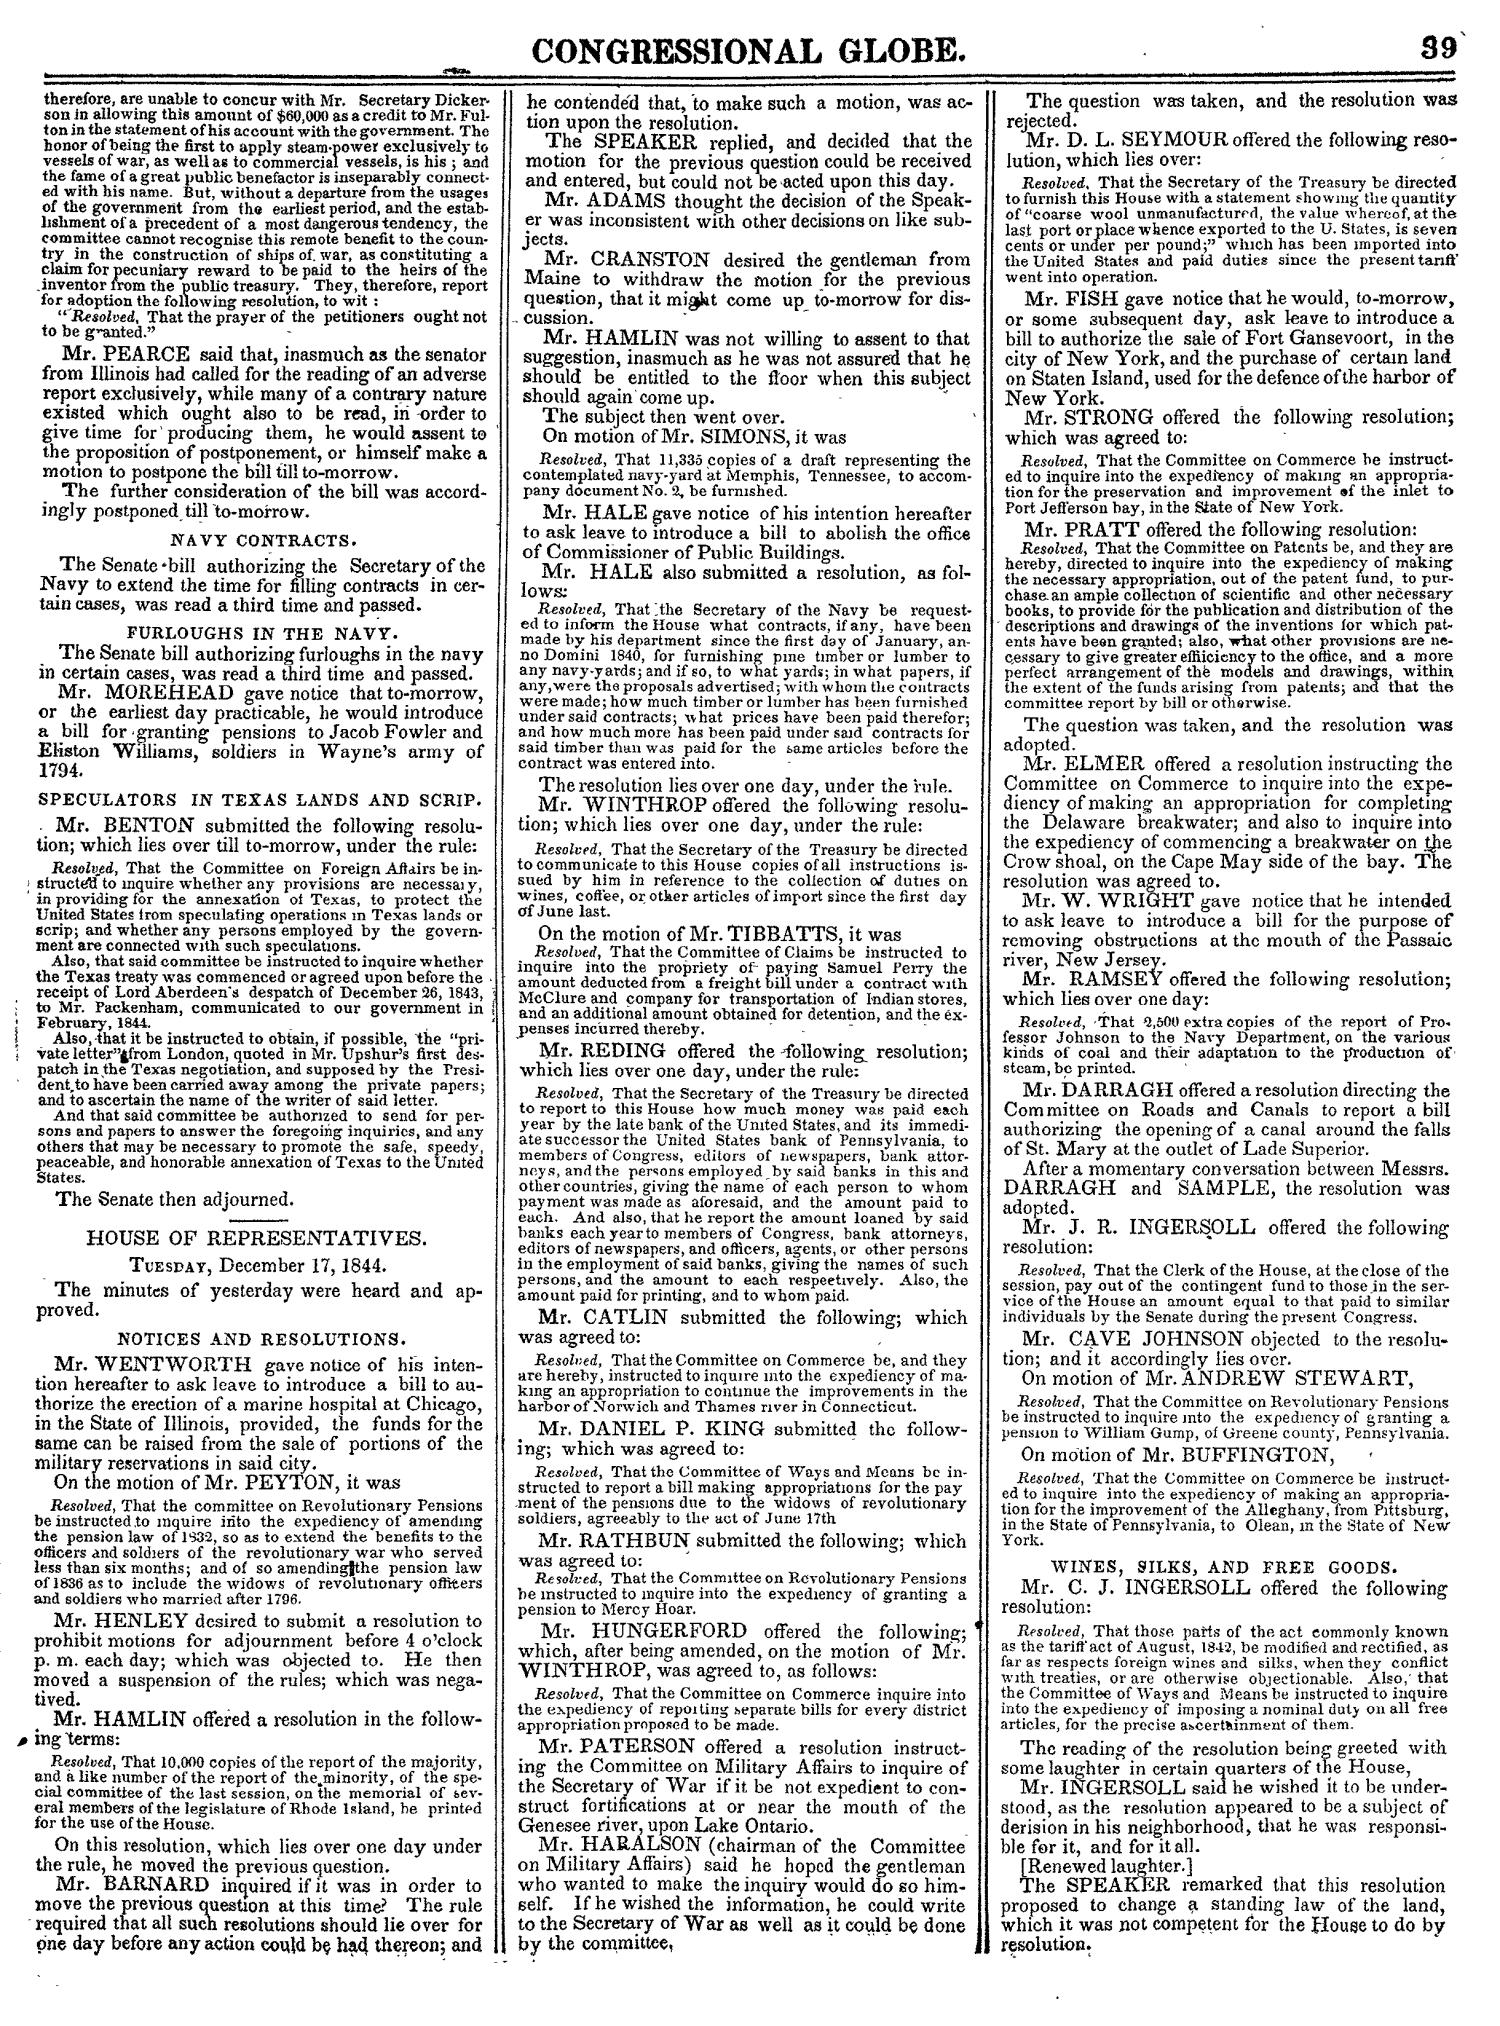 The Congressional Globe, Volume 14: Twenty-Eighth Congress, Second Session                                                                                                      39